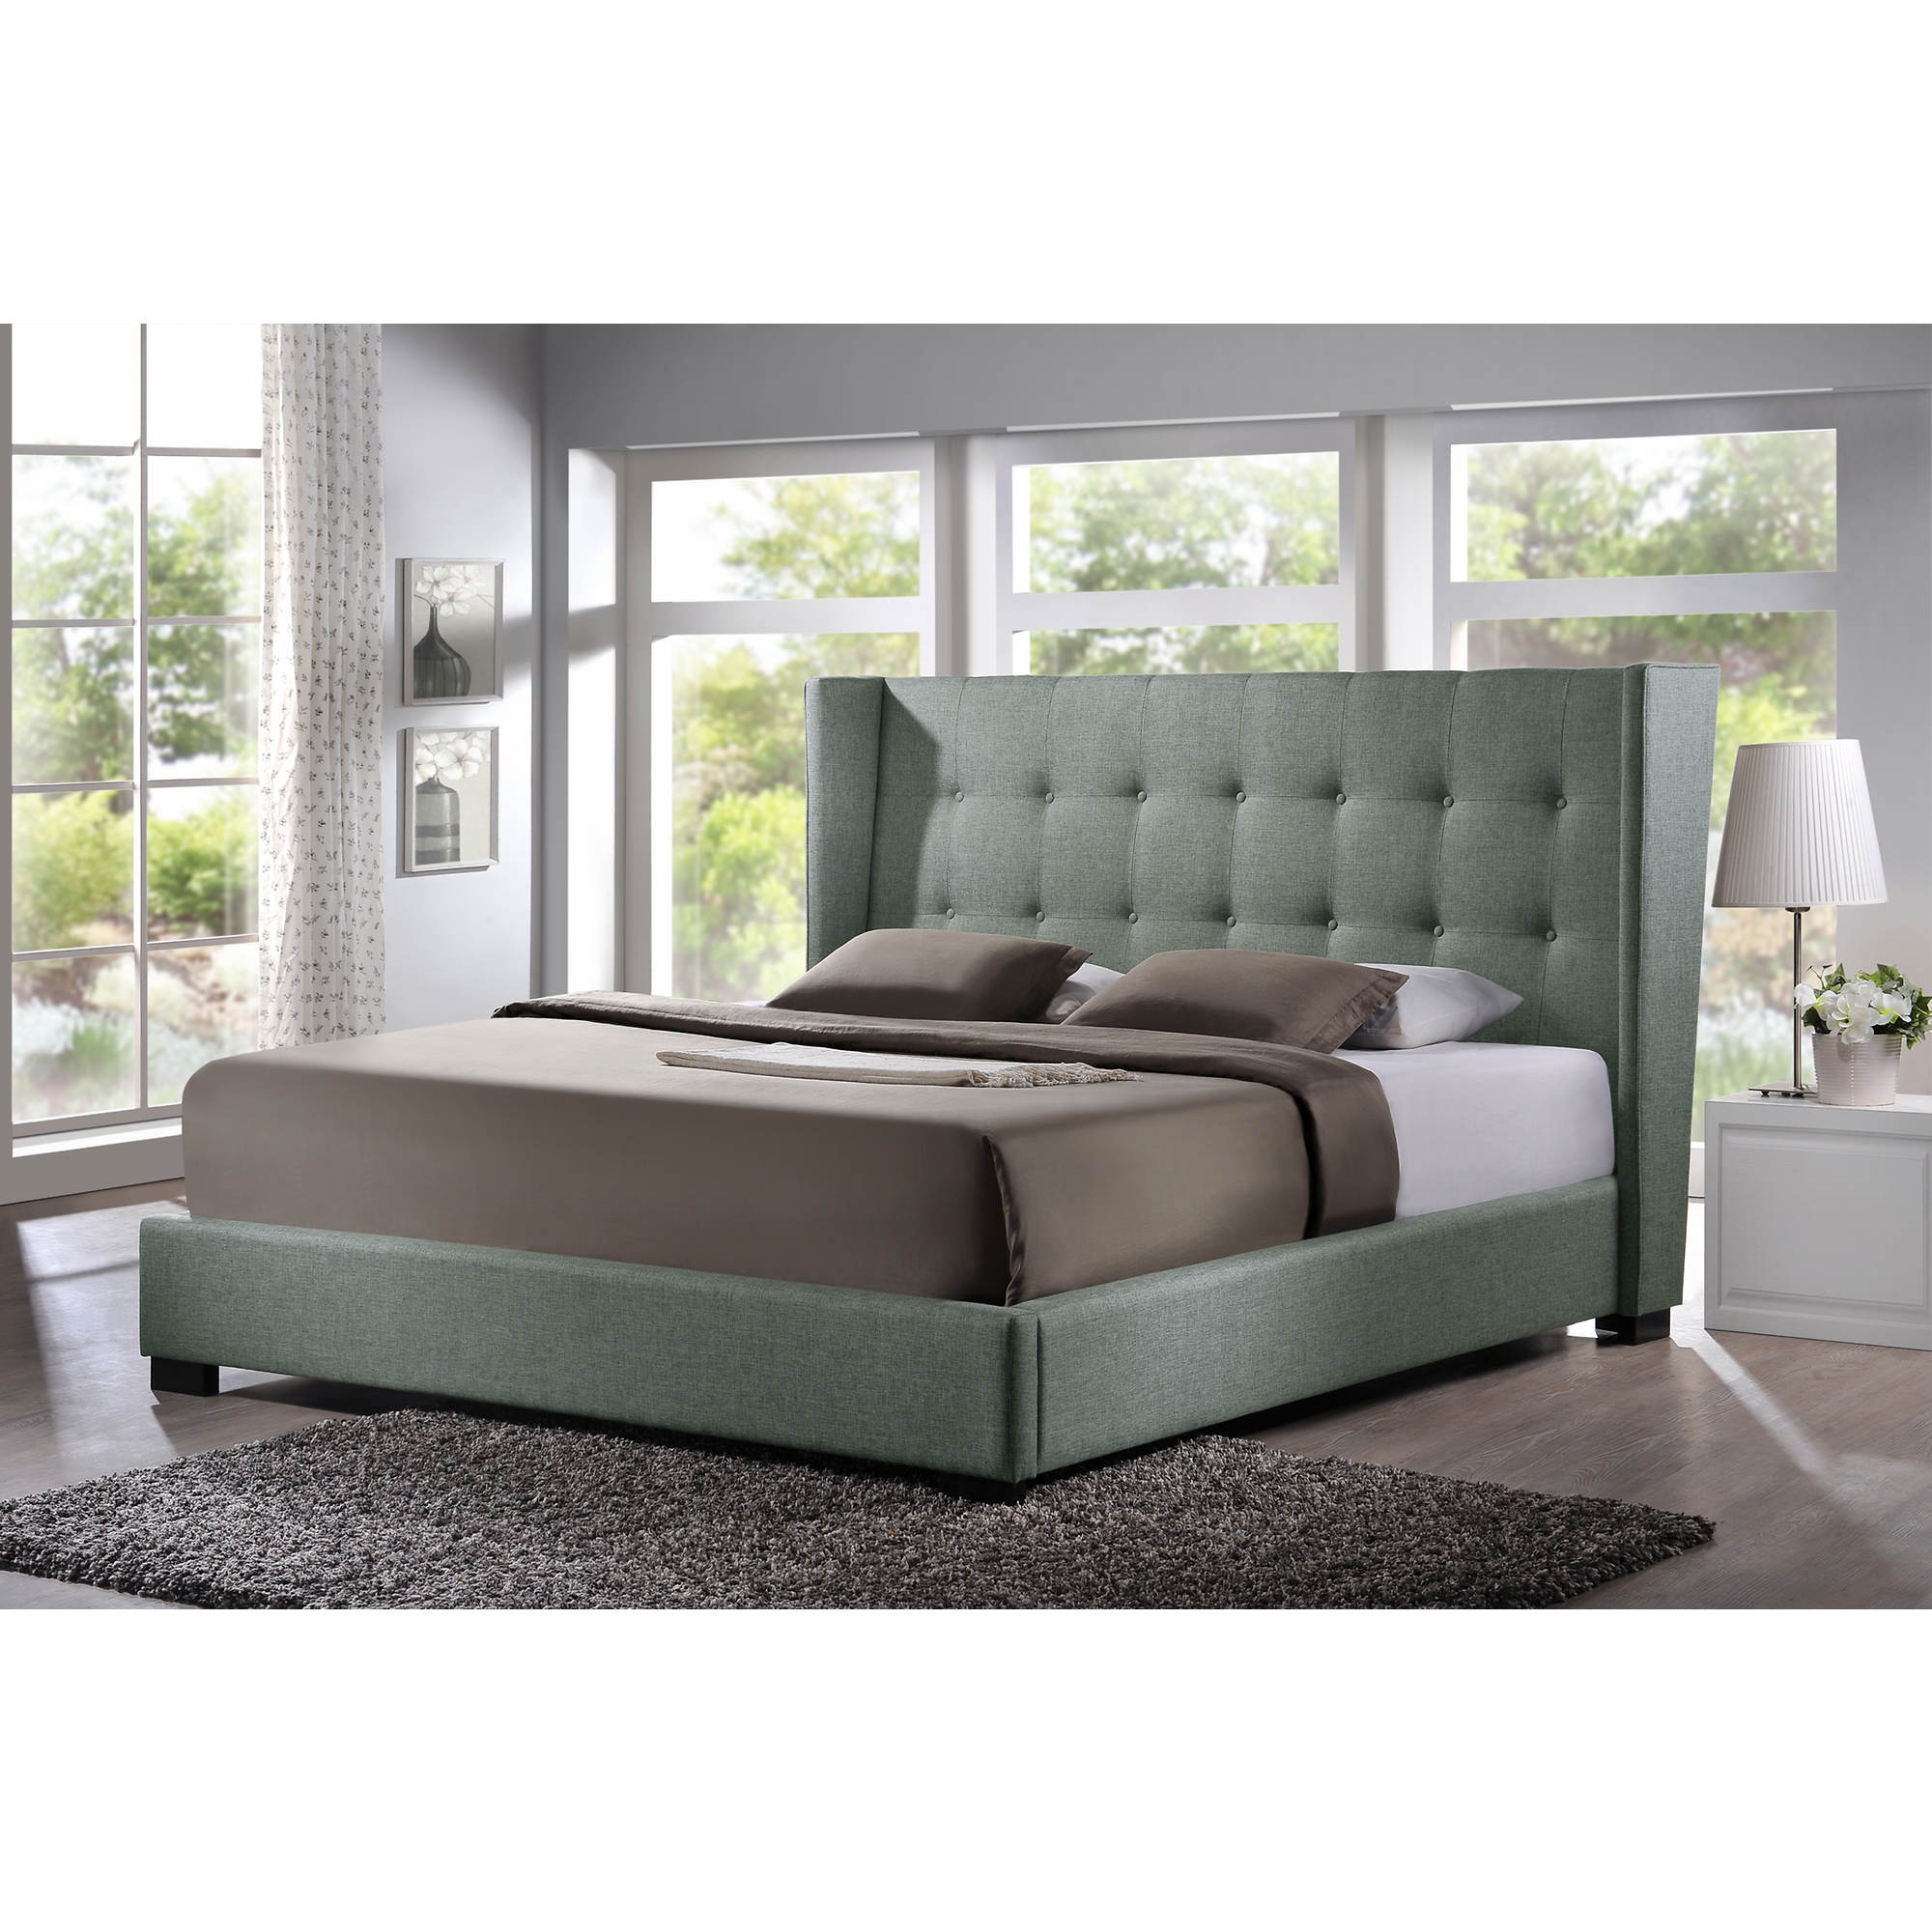 Baxton Studio Favela King-Size Platform Bed with Upholstered Headboard - Gray